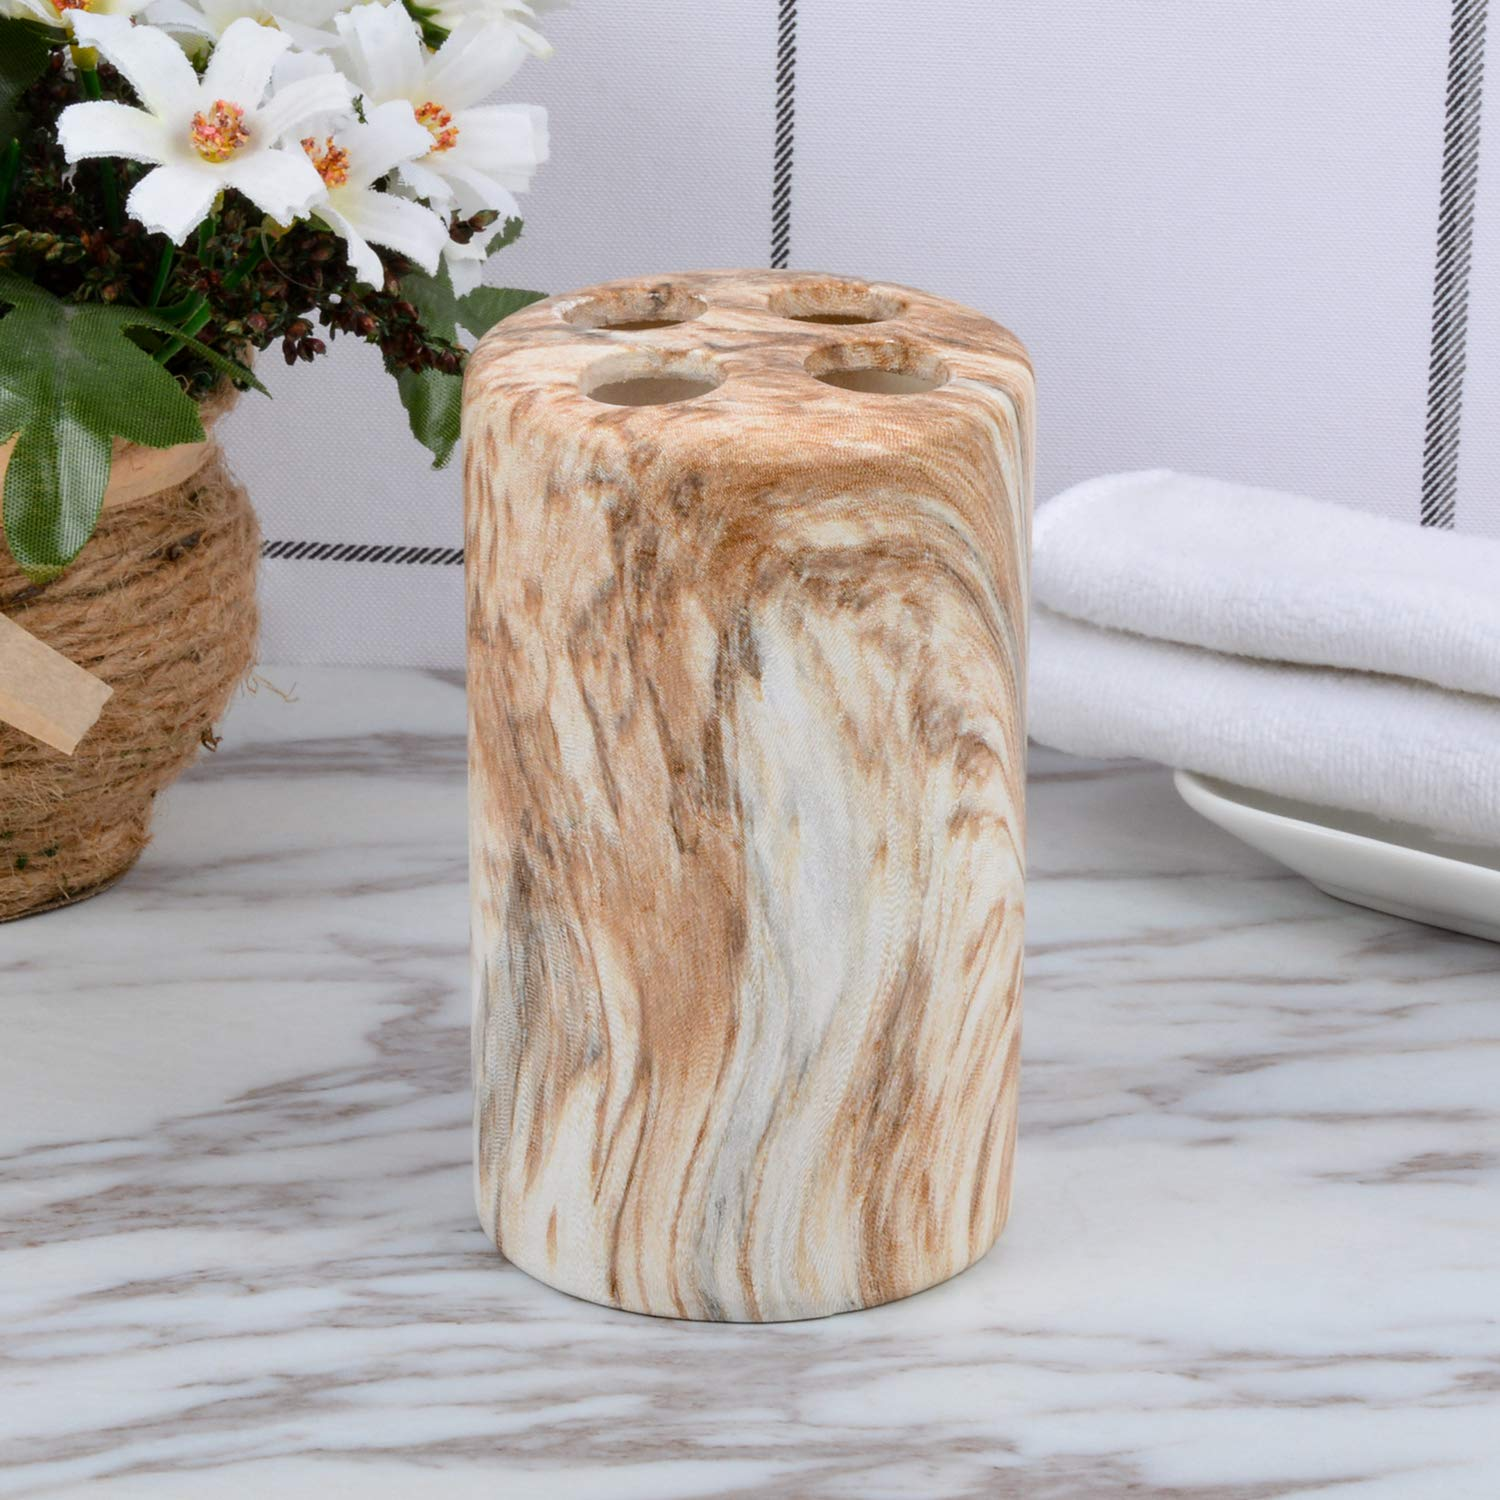 Antique Soap Dish Fimary Ceramic Marble Soap Dish Holder Oval Antibacterial Bathroom Vanity Soap with Unique Texture Keeps Soaps Dry